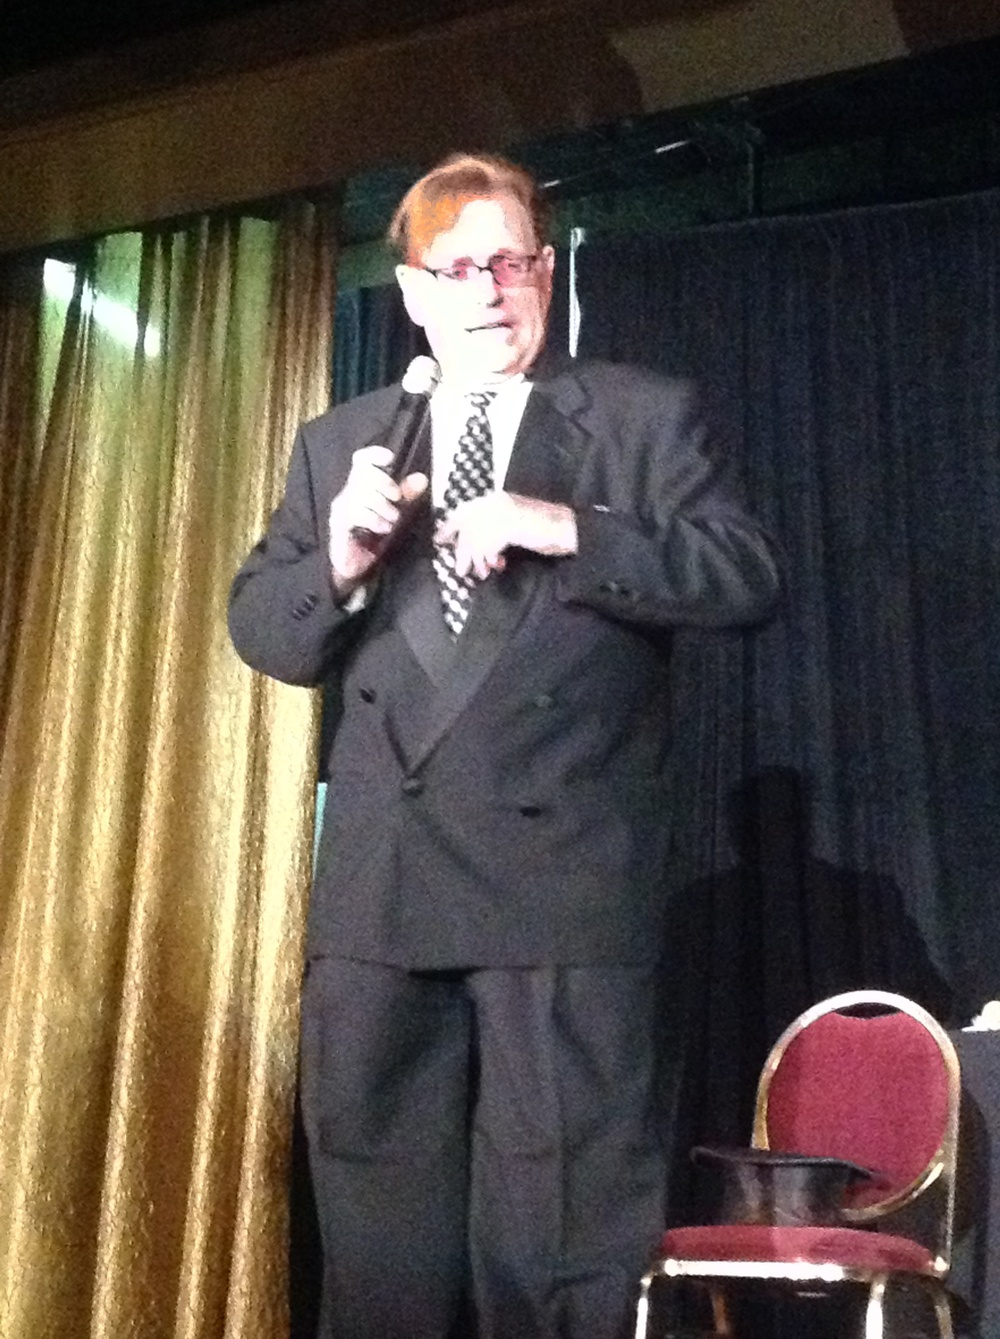 Fielding West at evening comedy show